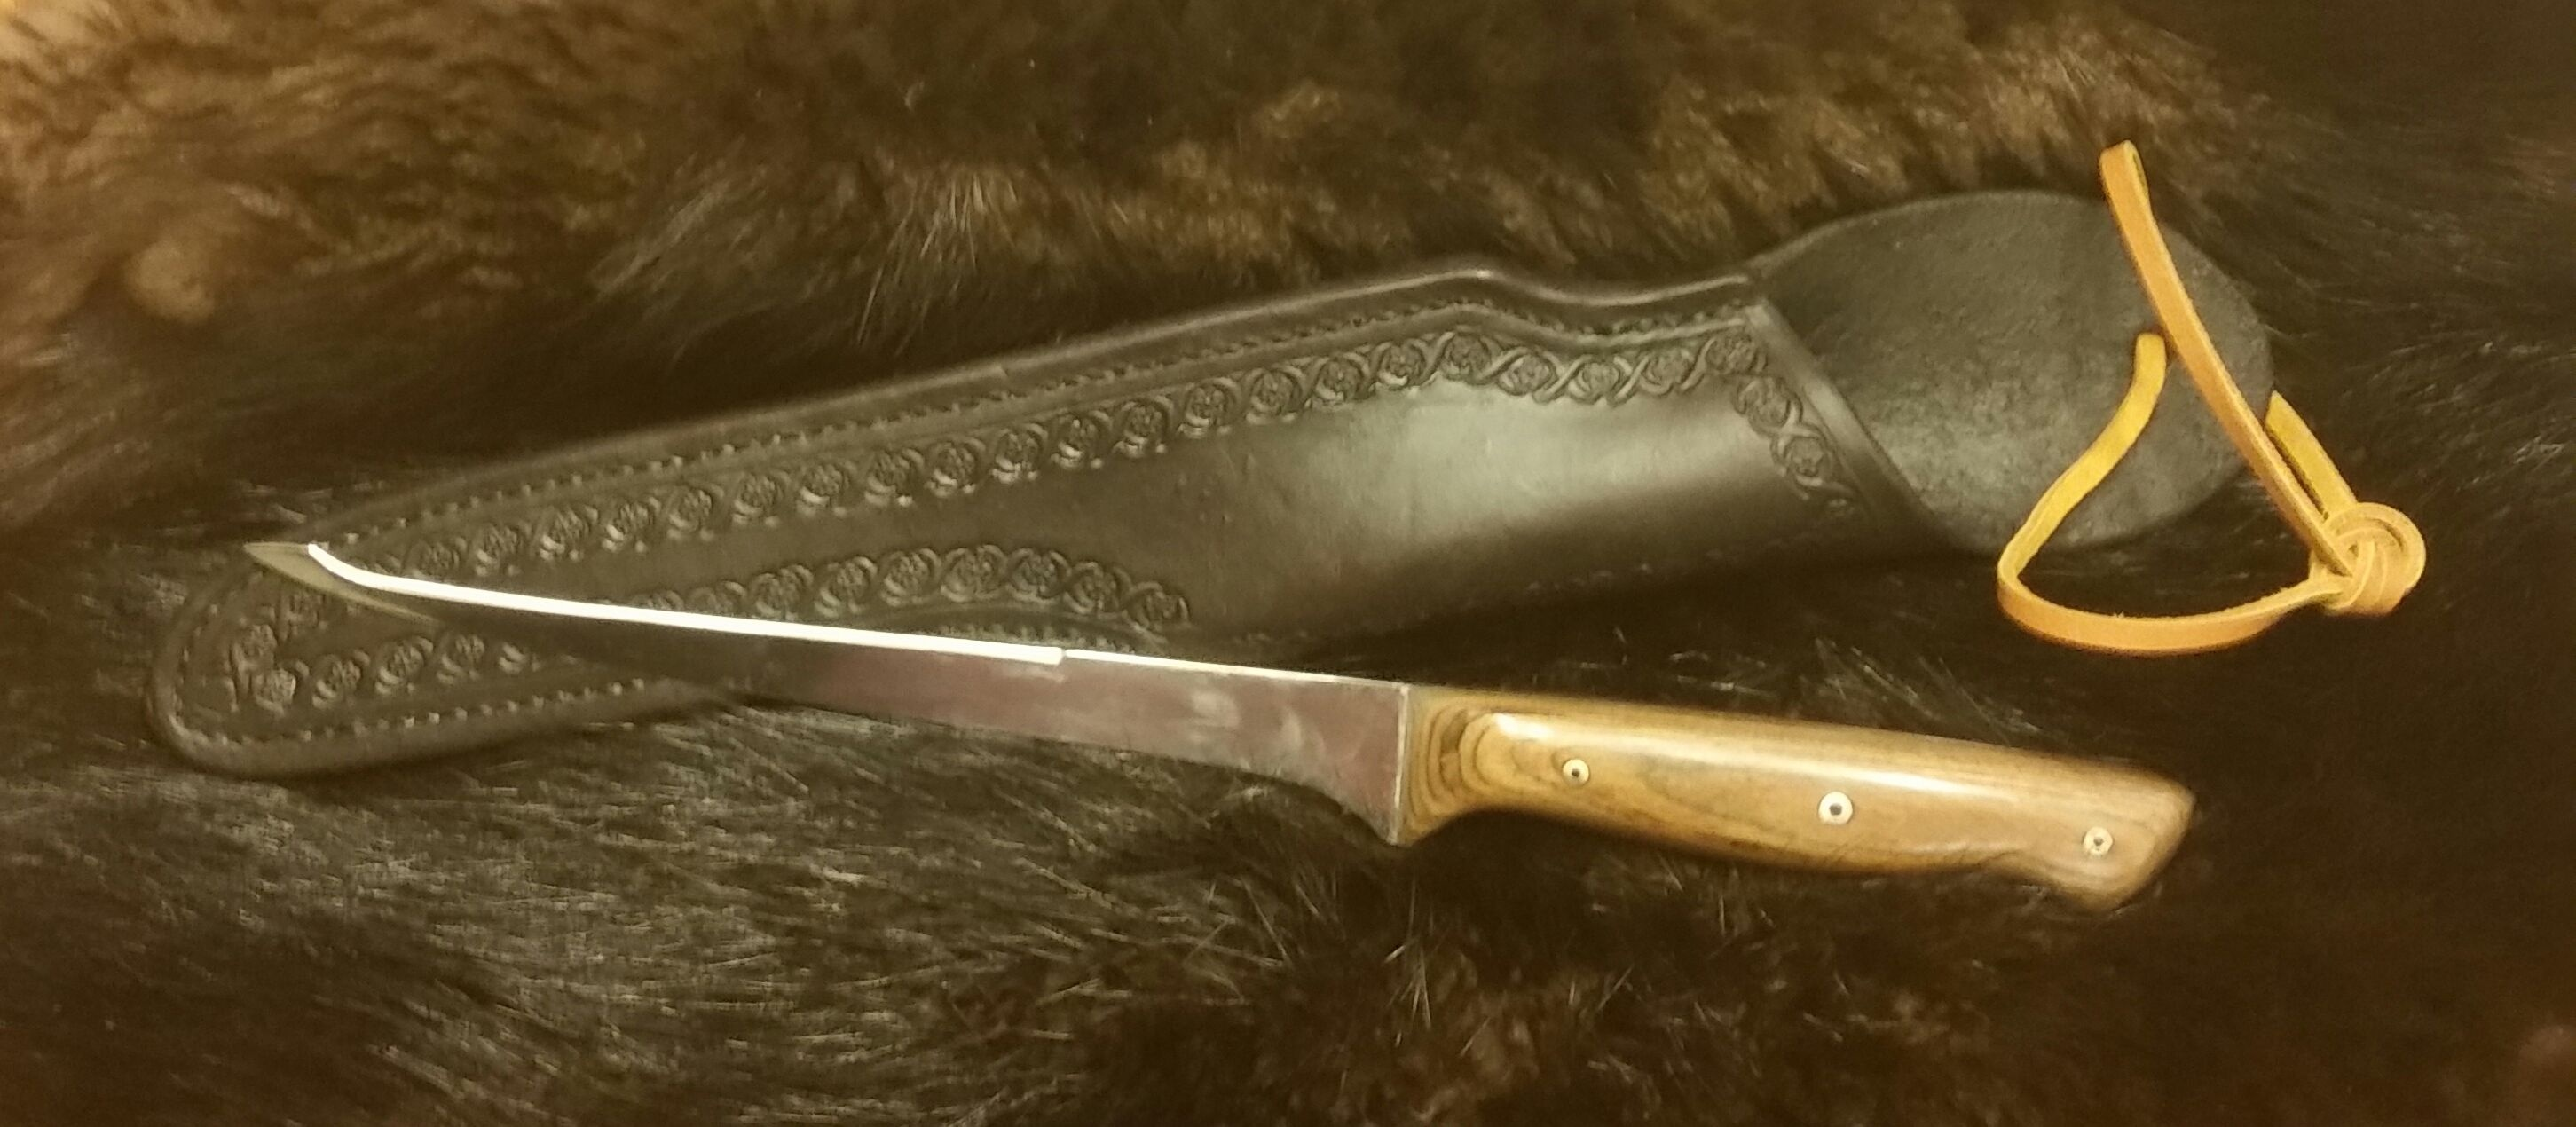 Double Edge Filet Knife with Hand Tooled, Hand Stitched Leather Sheath...  $110.00